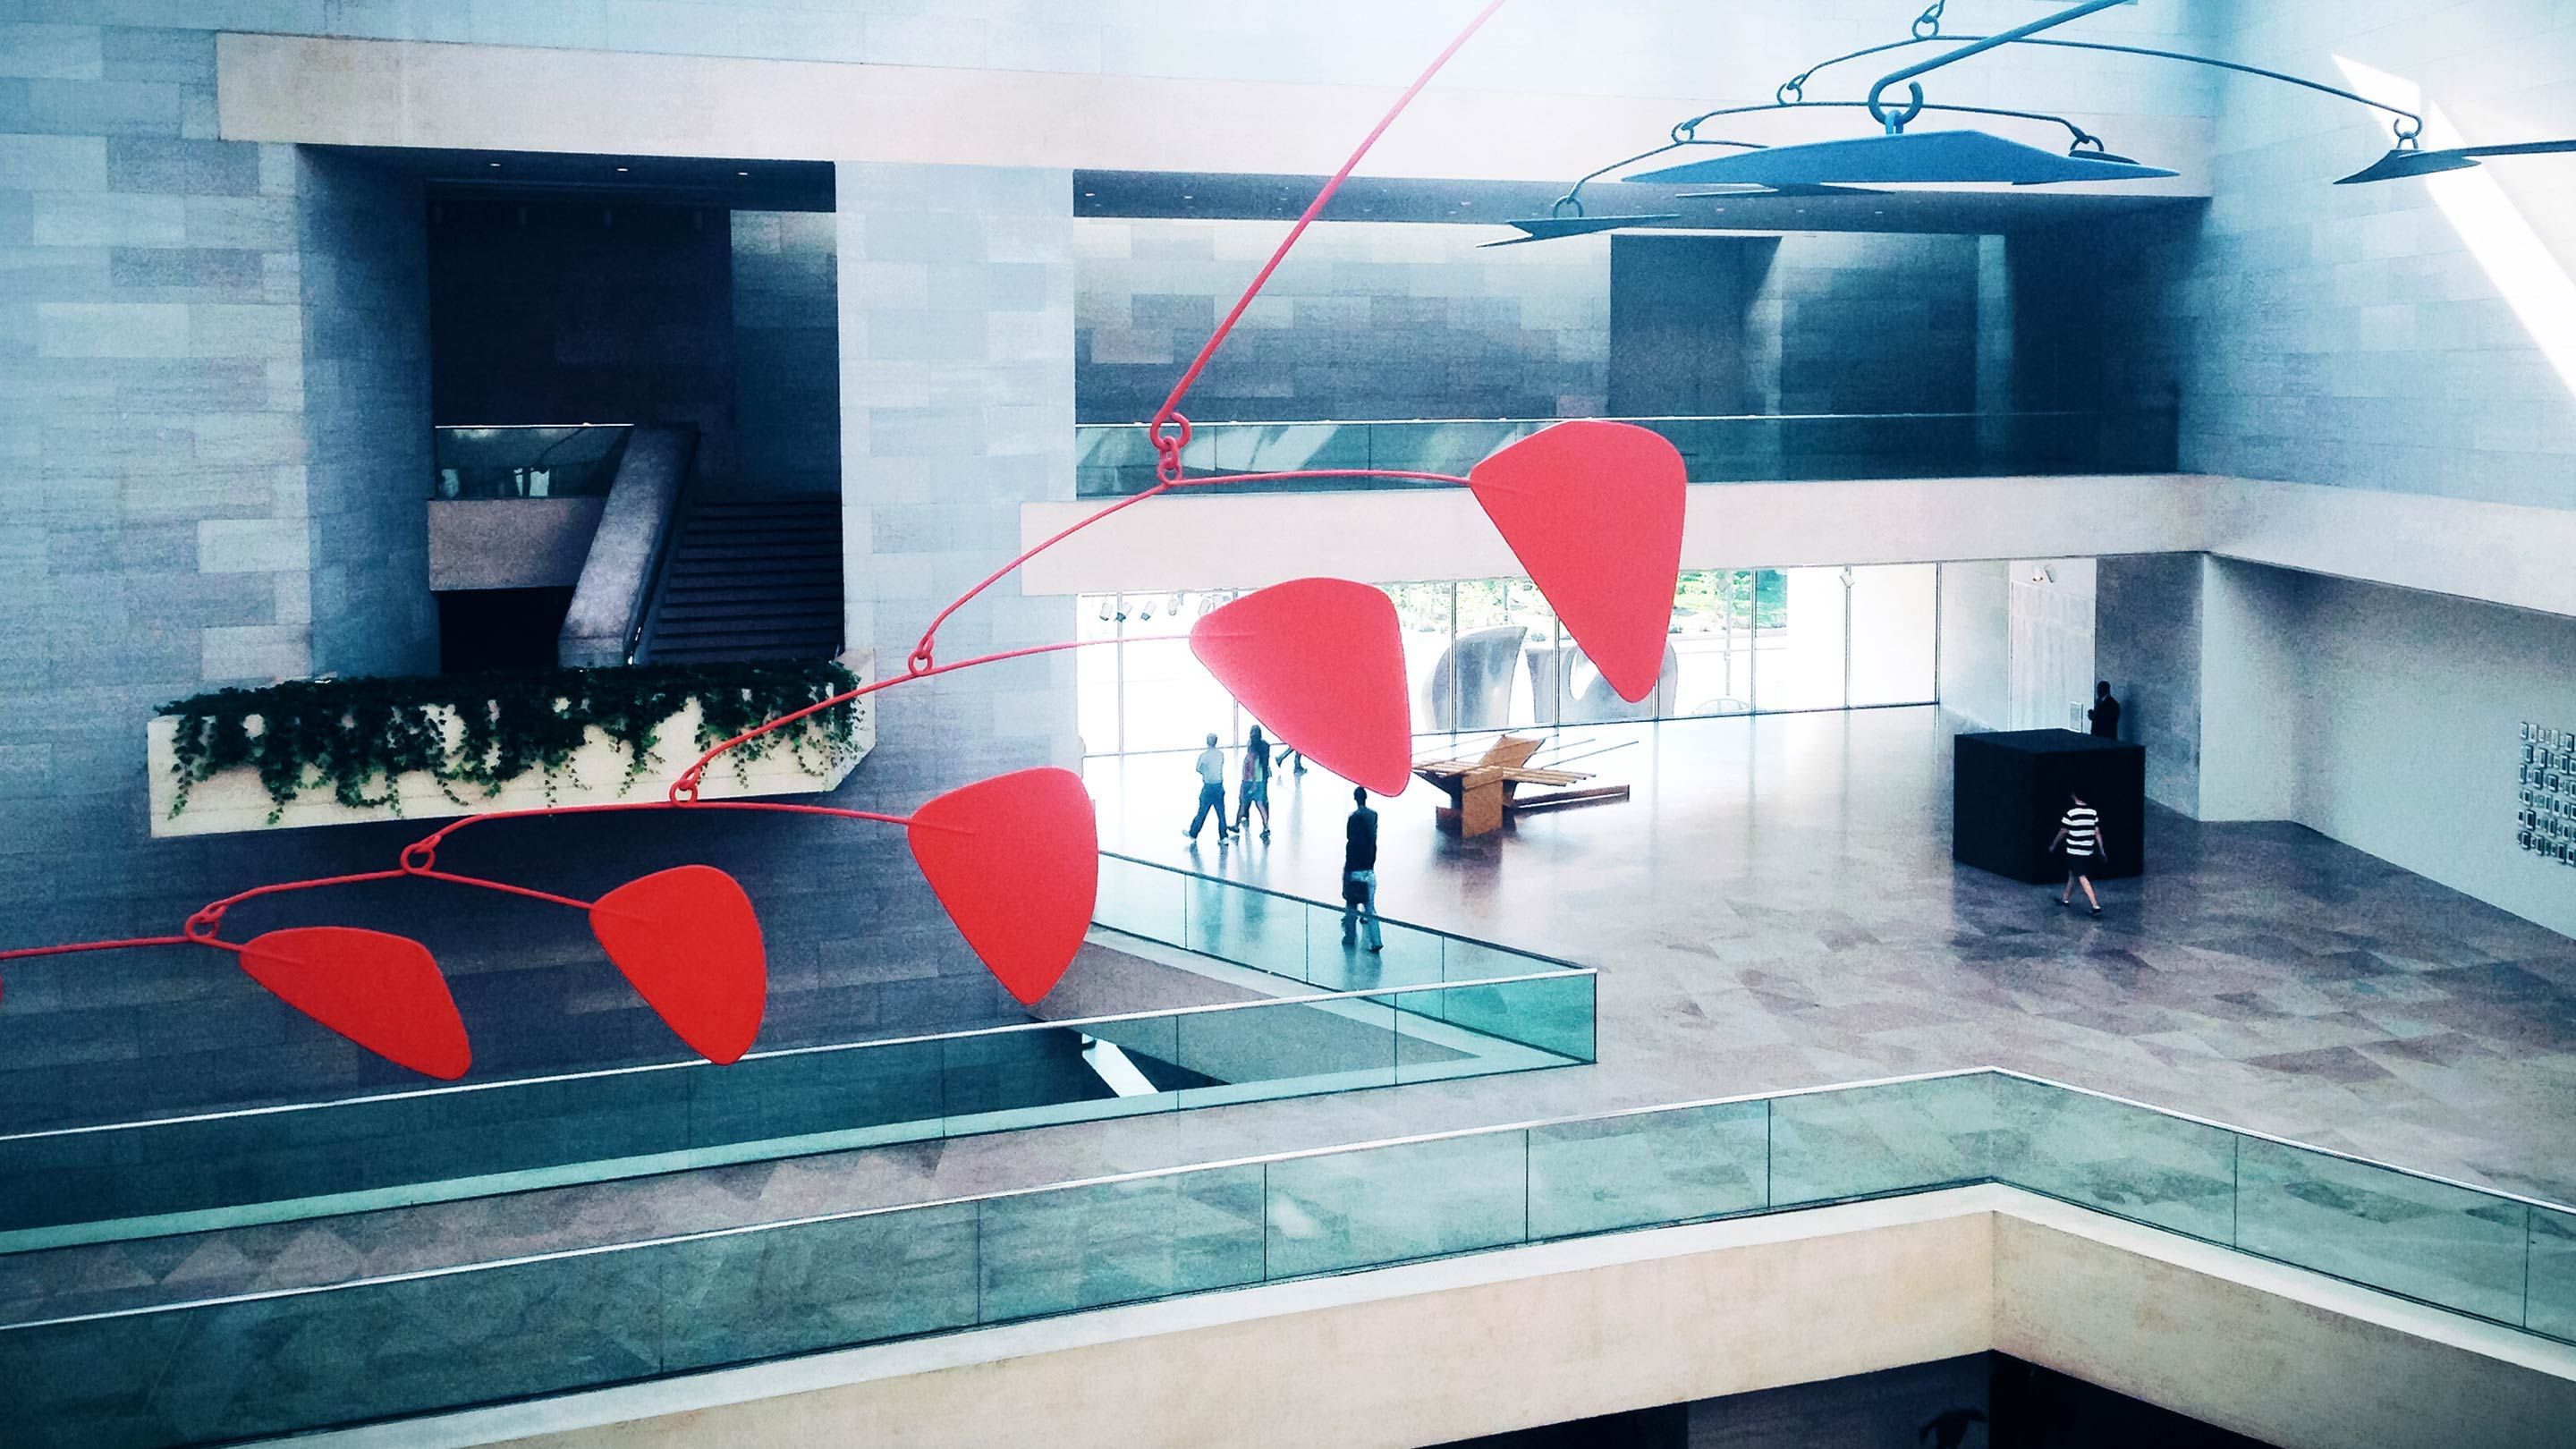 A mobile by Alexander Calder that hangs in the National Gallery of Art